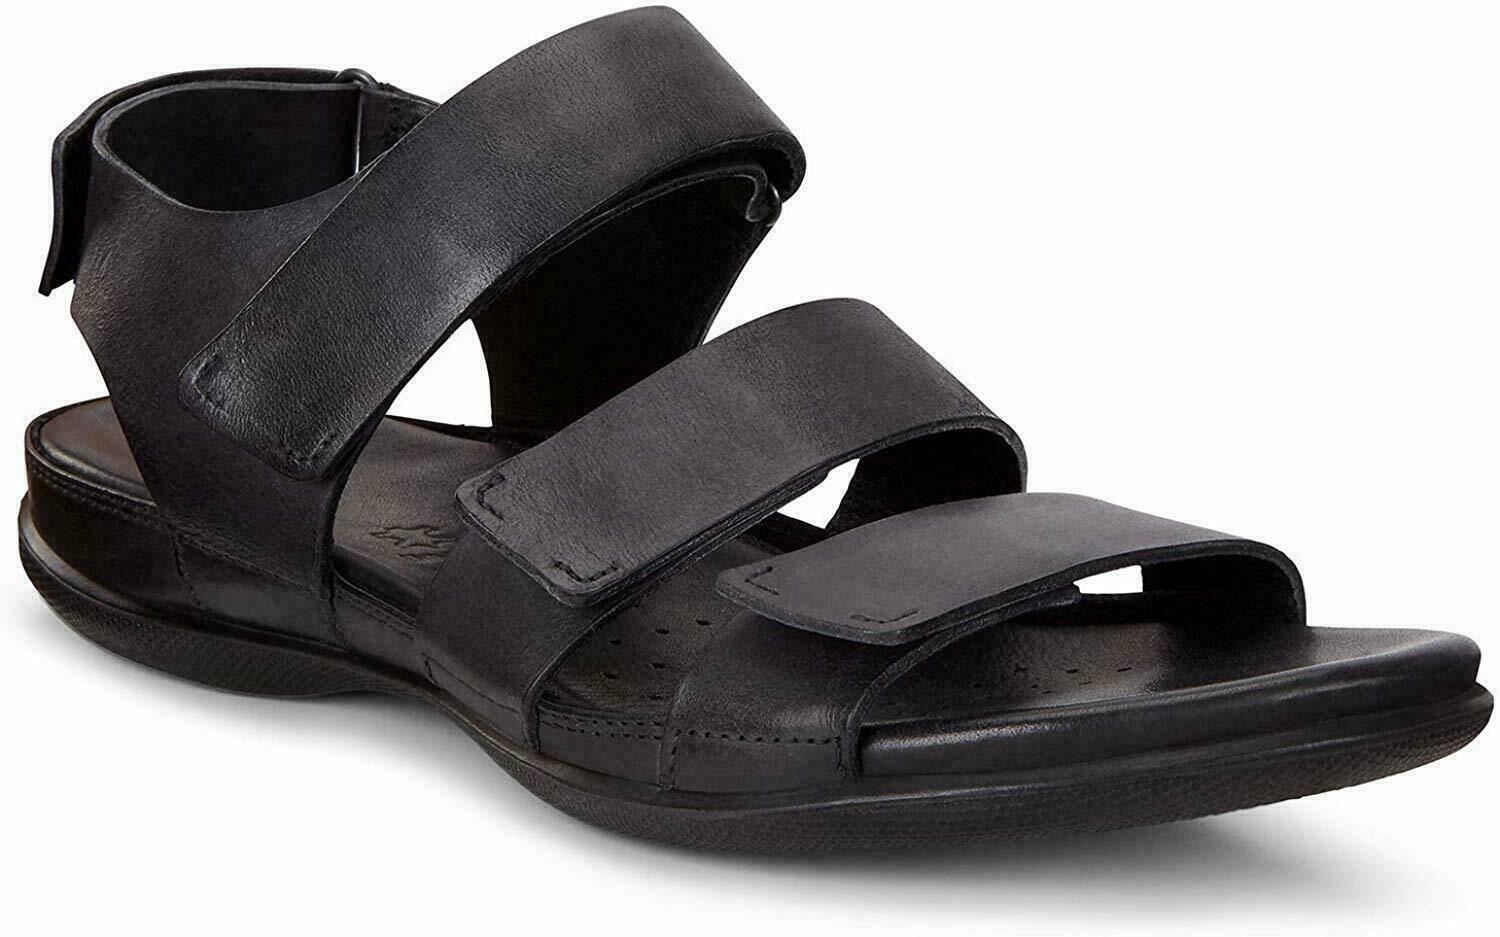 Primary image for ECCO Women's Flash Flat Sandal Black Size 6-6.5 US 37 EUR